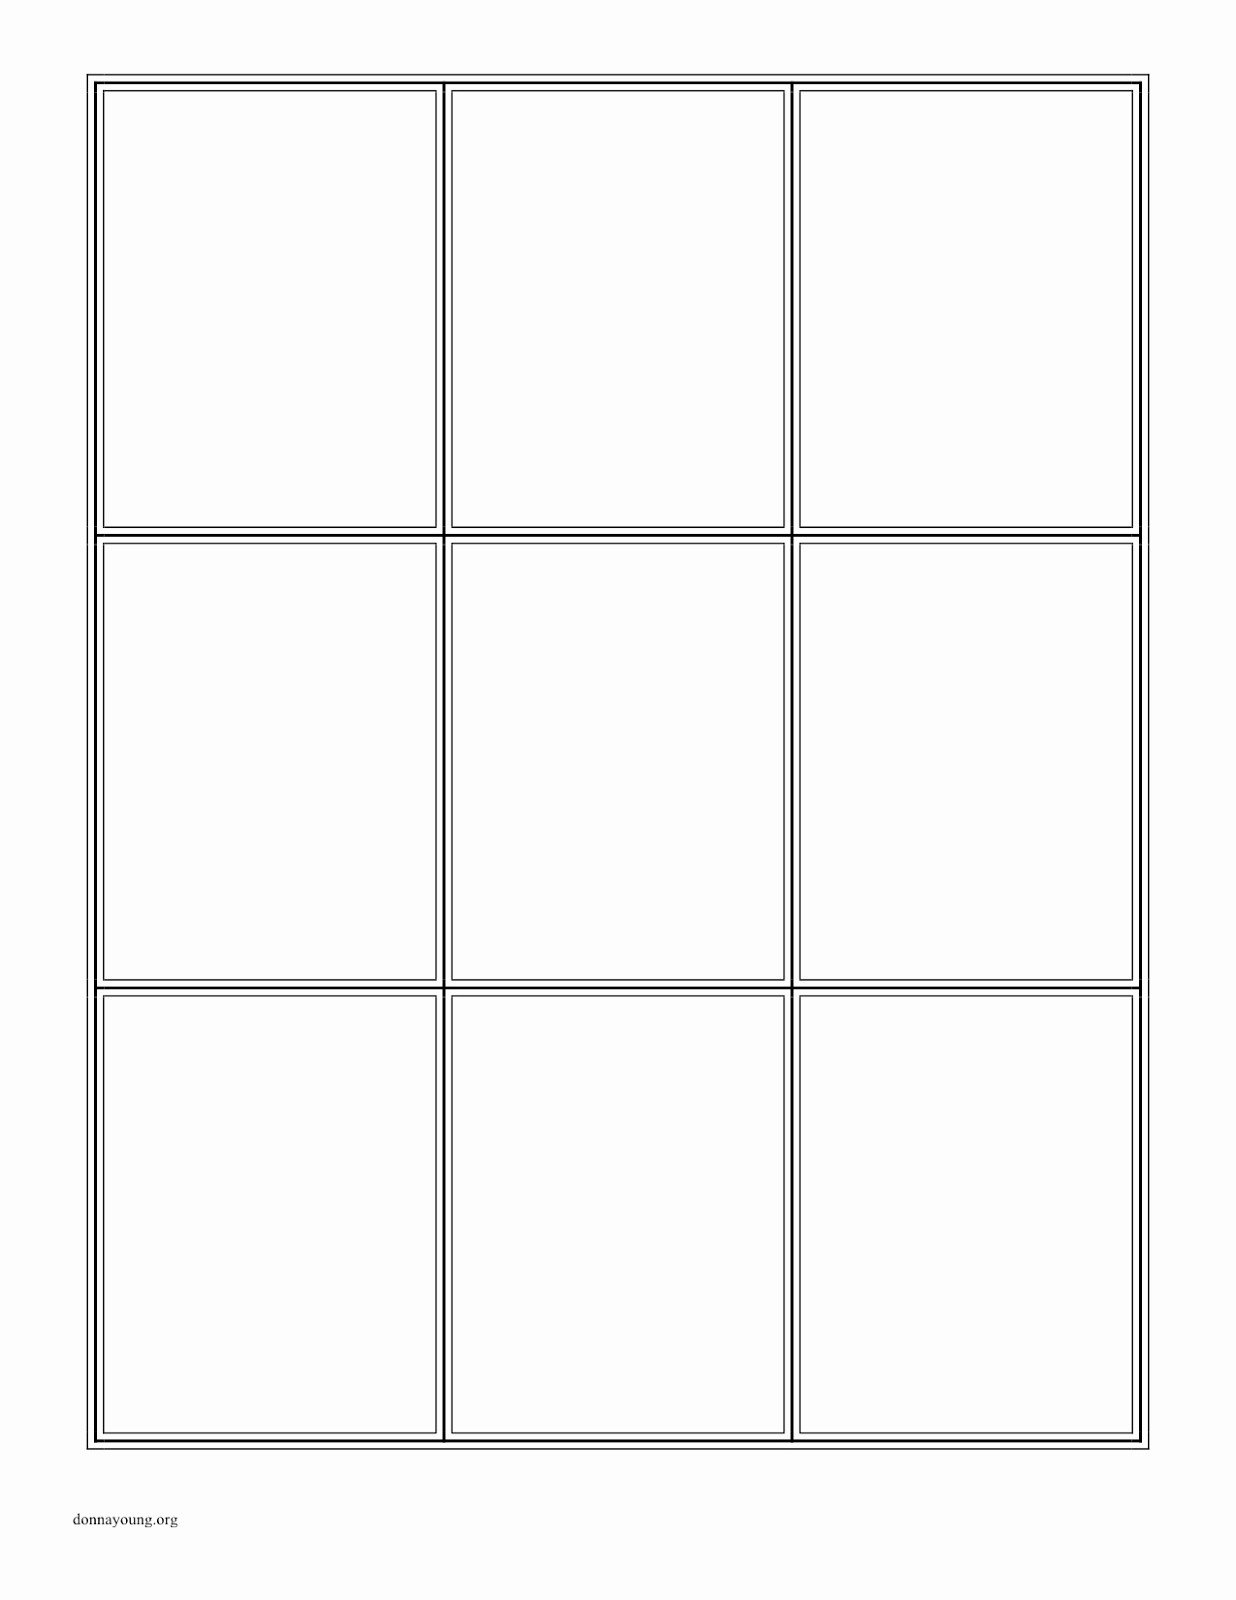 Blank Playing Card Template Word Awesome Best S Of Playing Card Templates for Word Playing